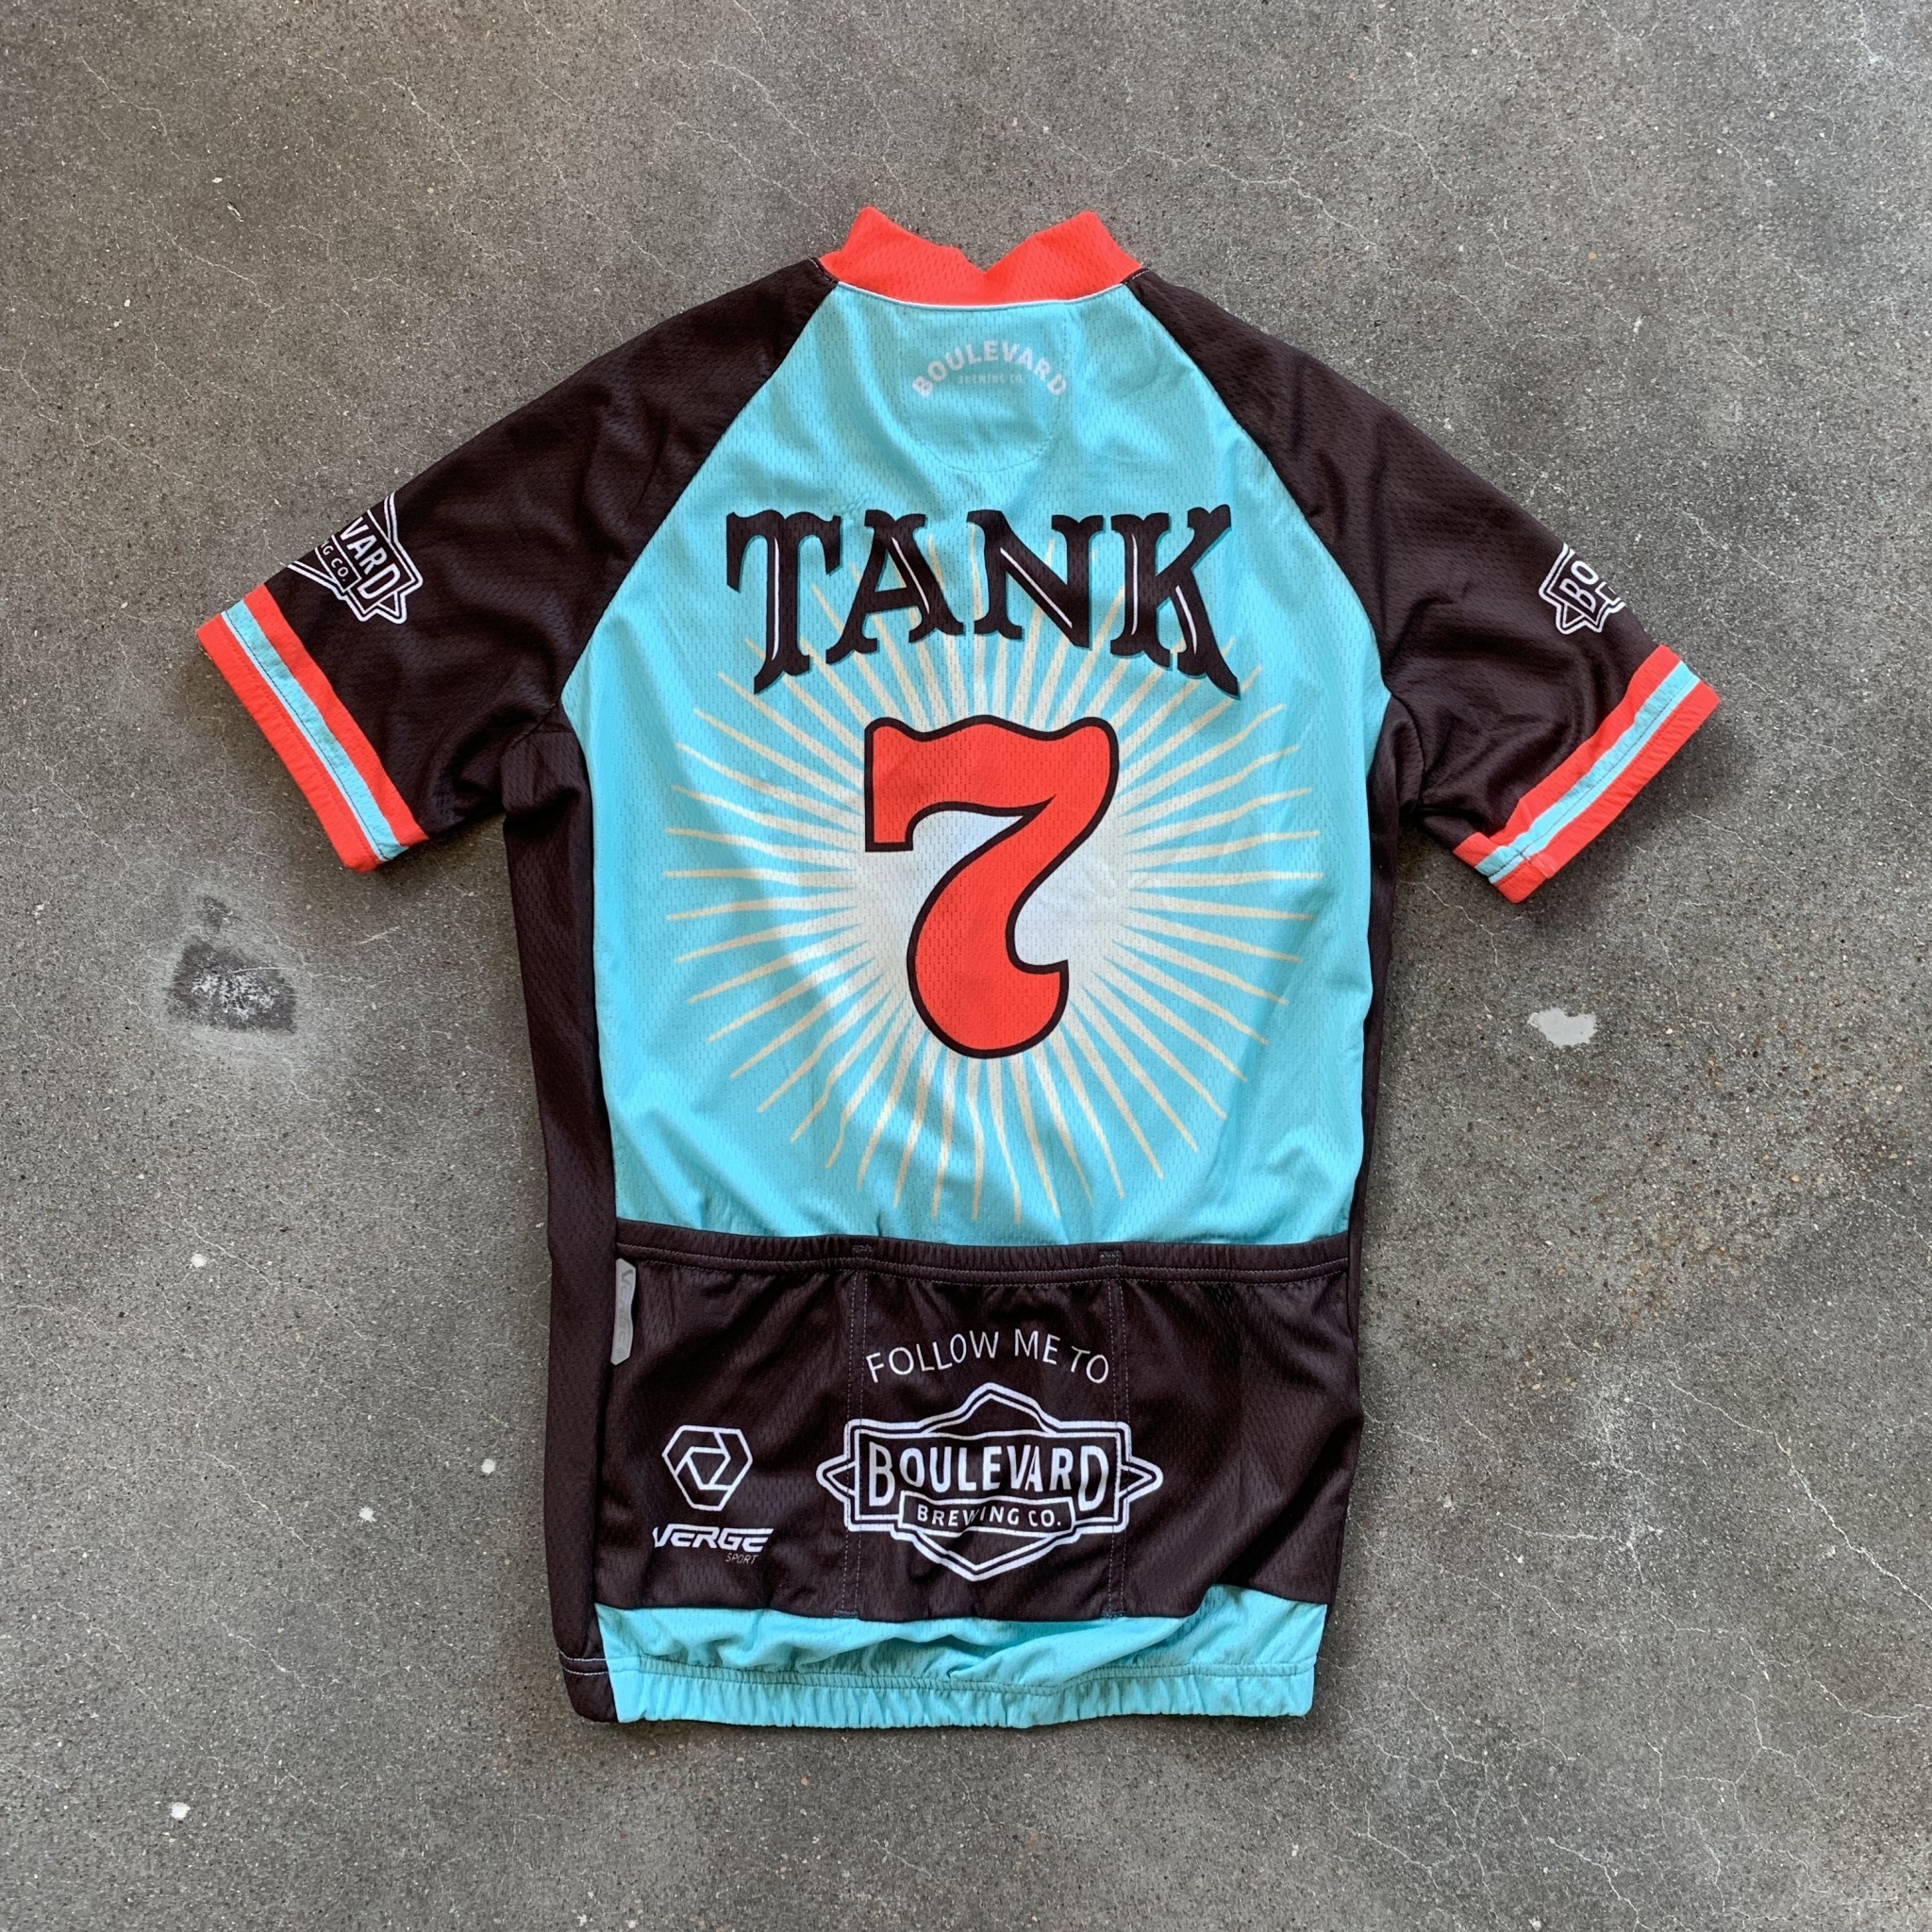 New Tank 7 Bicycle Jersey